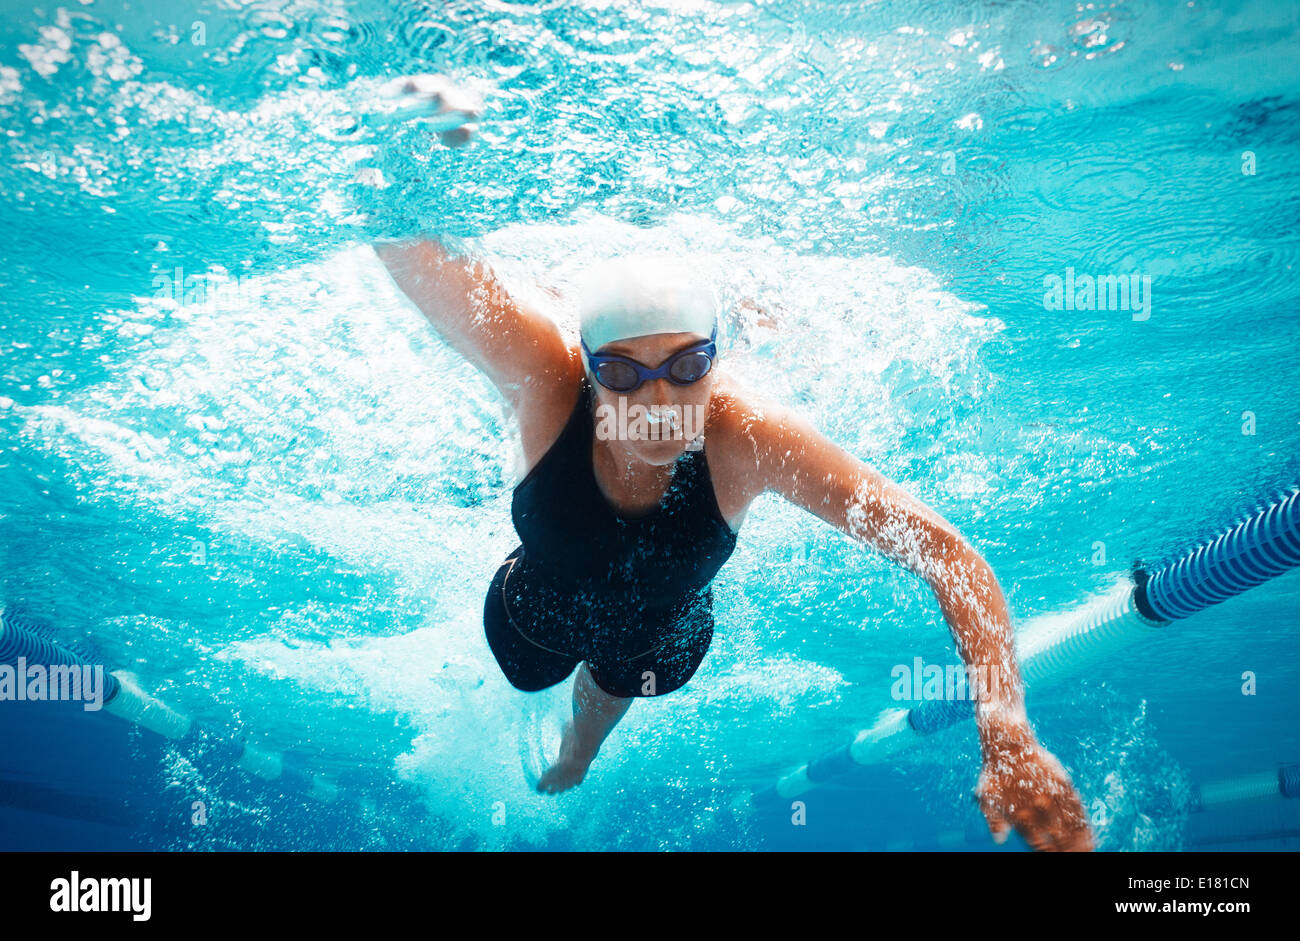 Swimmer racing in pool - Stock Image